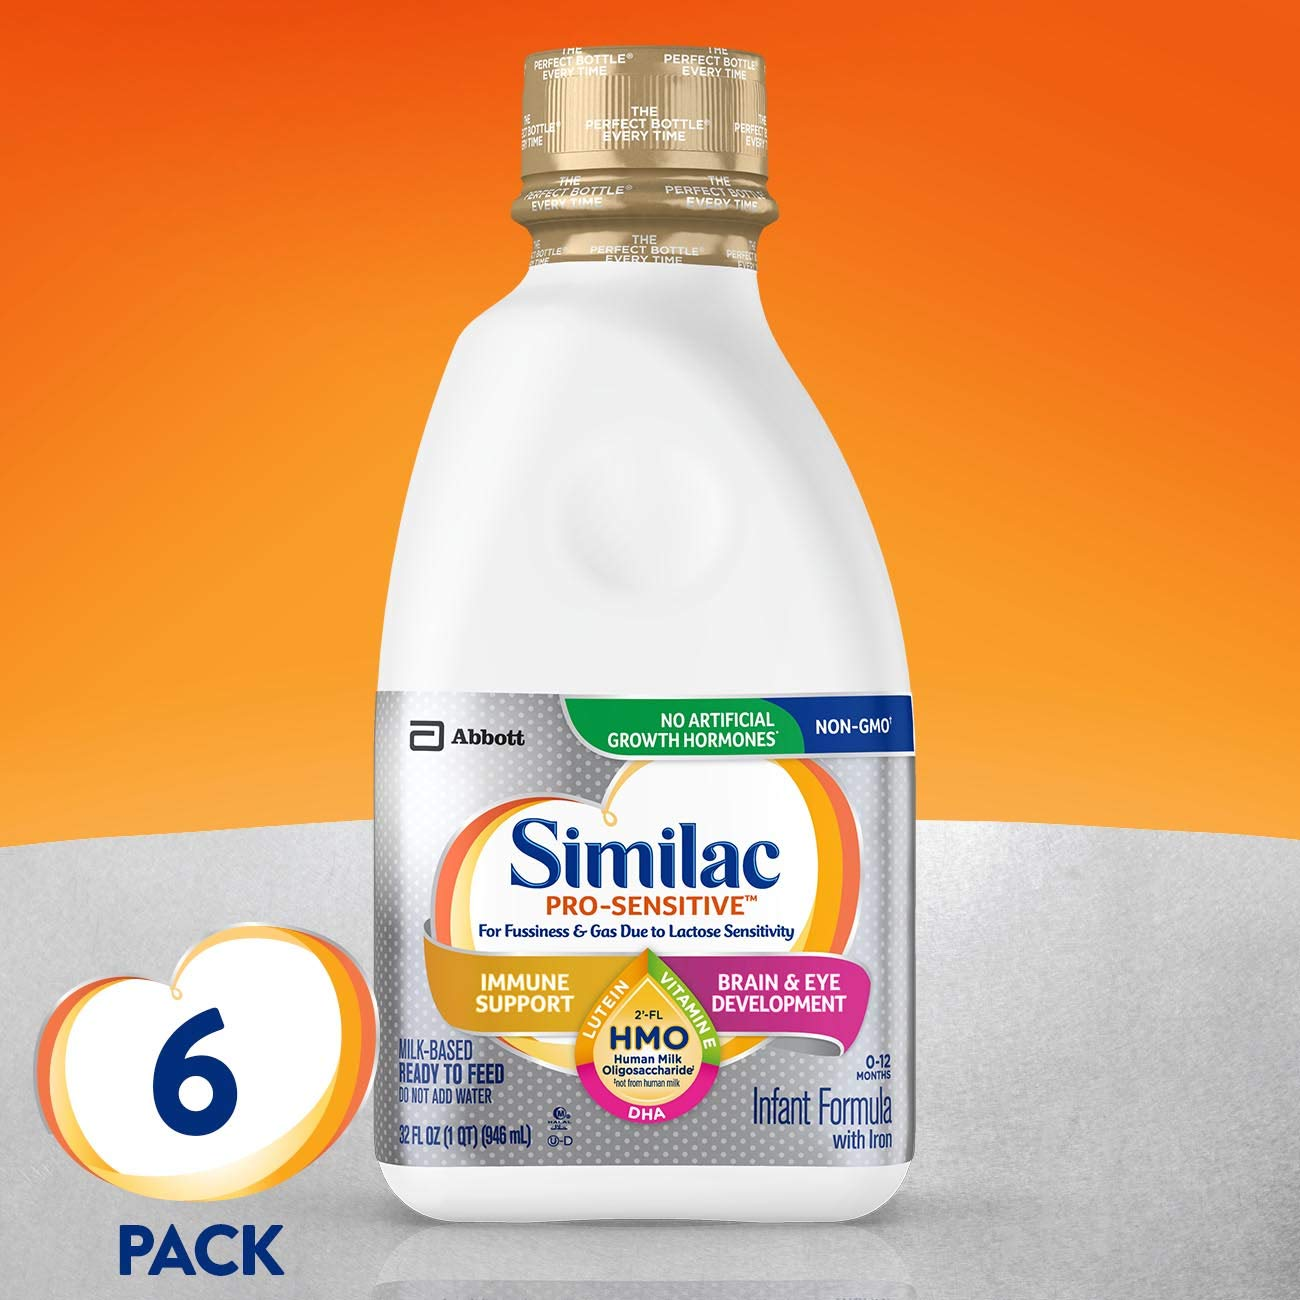 Similac Pro-Sensitive Infant Formula with 2'-FL Human Milk Oligosaccharide (HMO) for Immune Support, Ready to Feed, 32 Fl Oz, Pack of 6